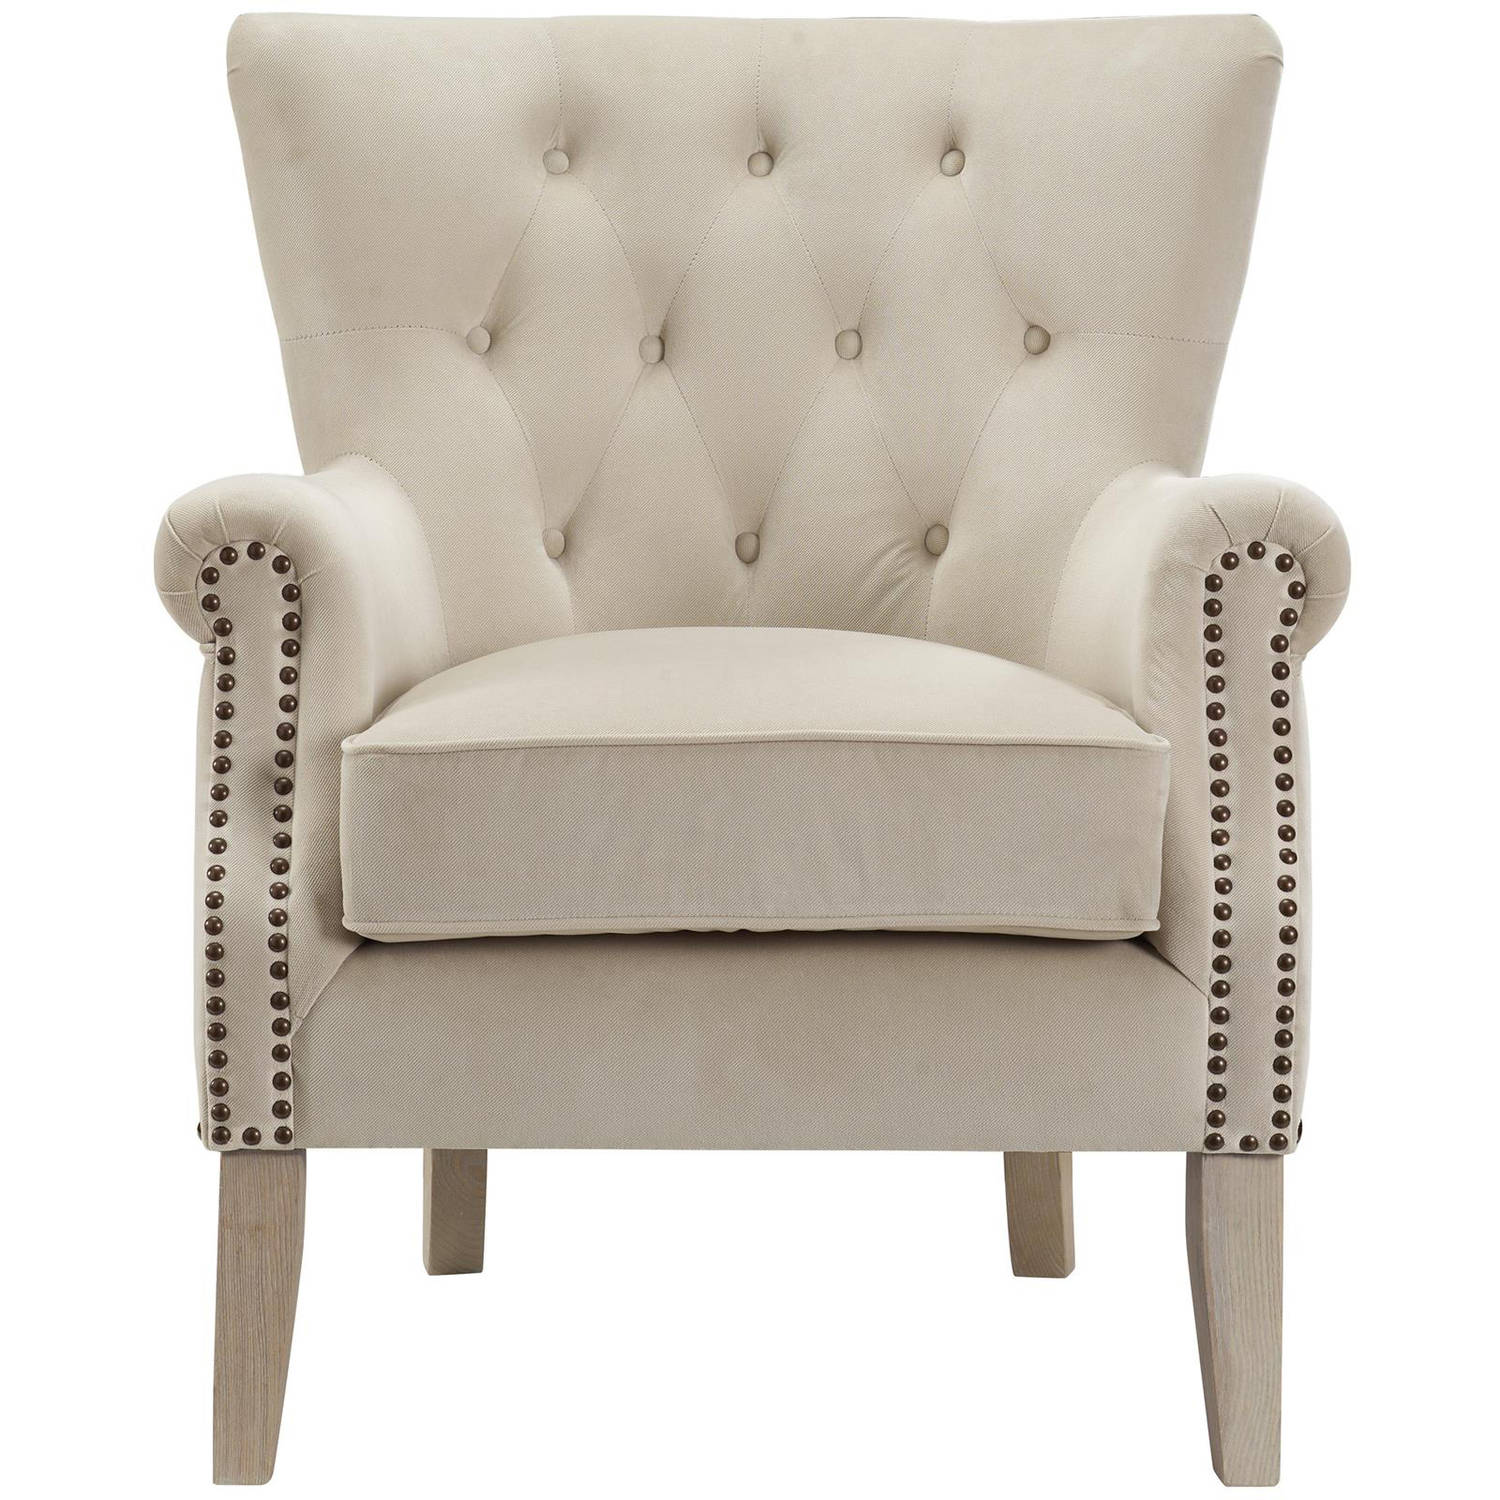 Better Homes And Gardens Rolled Arm Accent Chair, Multiple Colors    Walmart.com